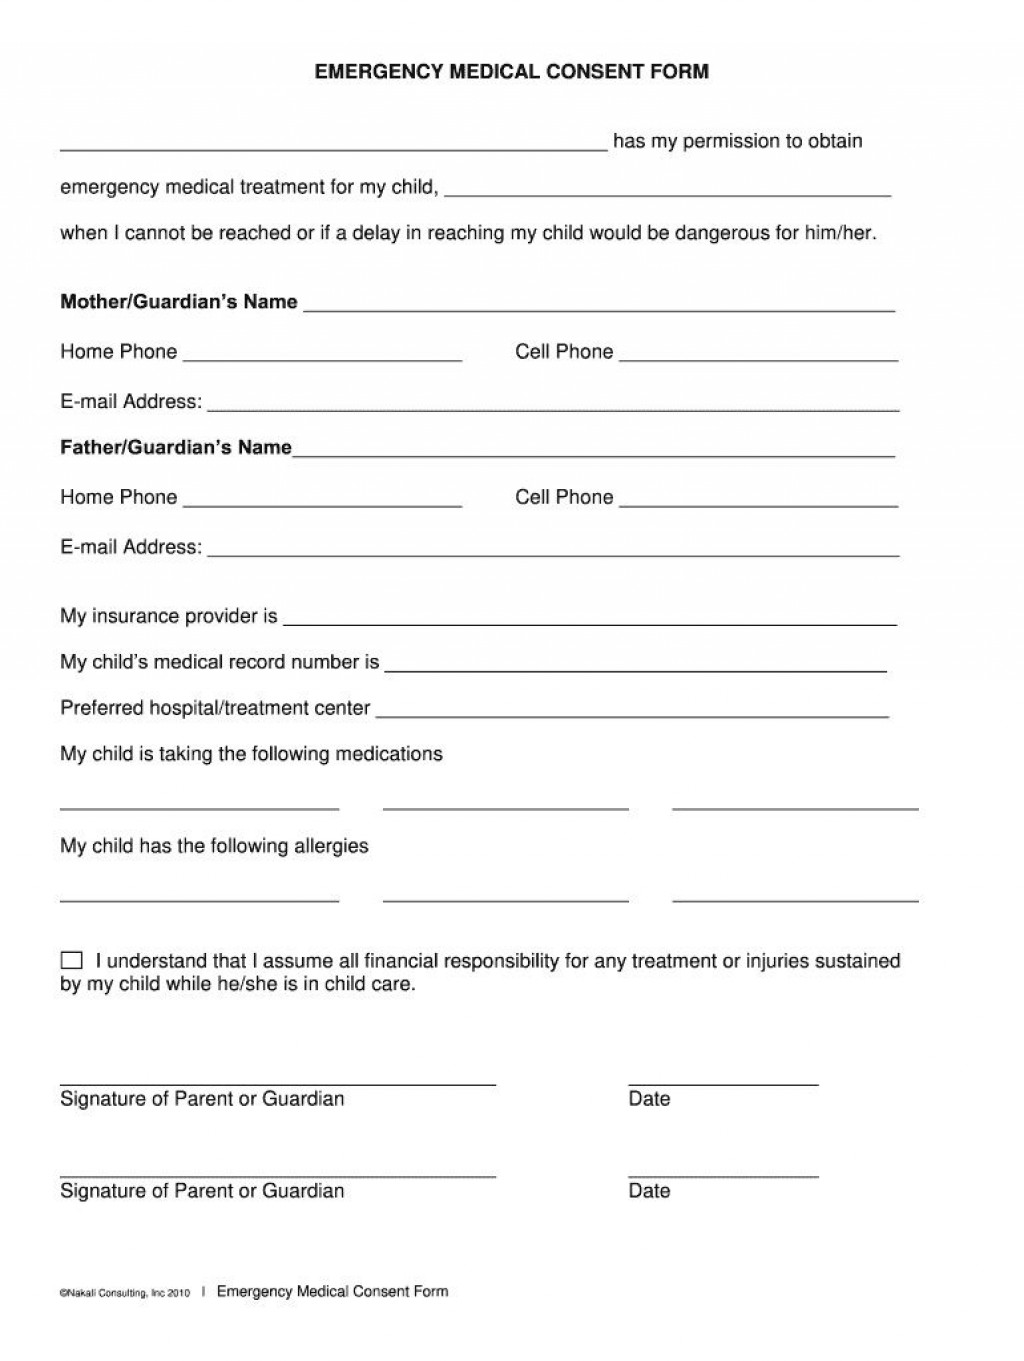 007 Awesome Medical Release Form Template Example  Free Consent Uk For MinorLarge